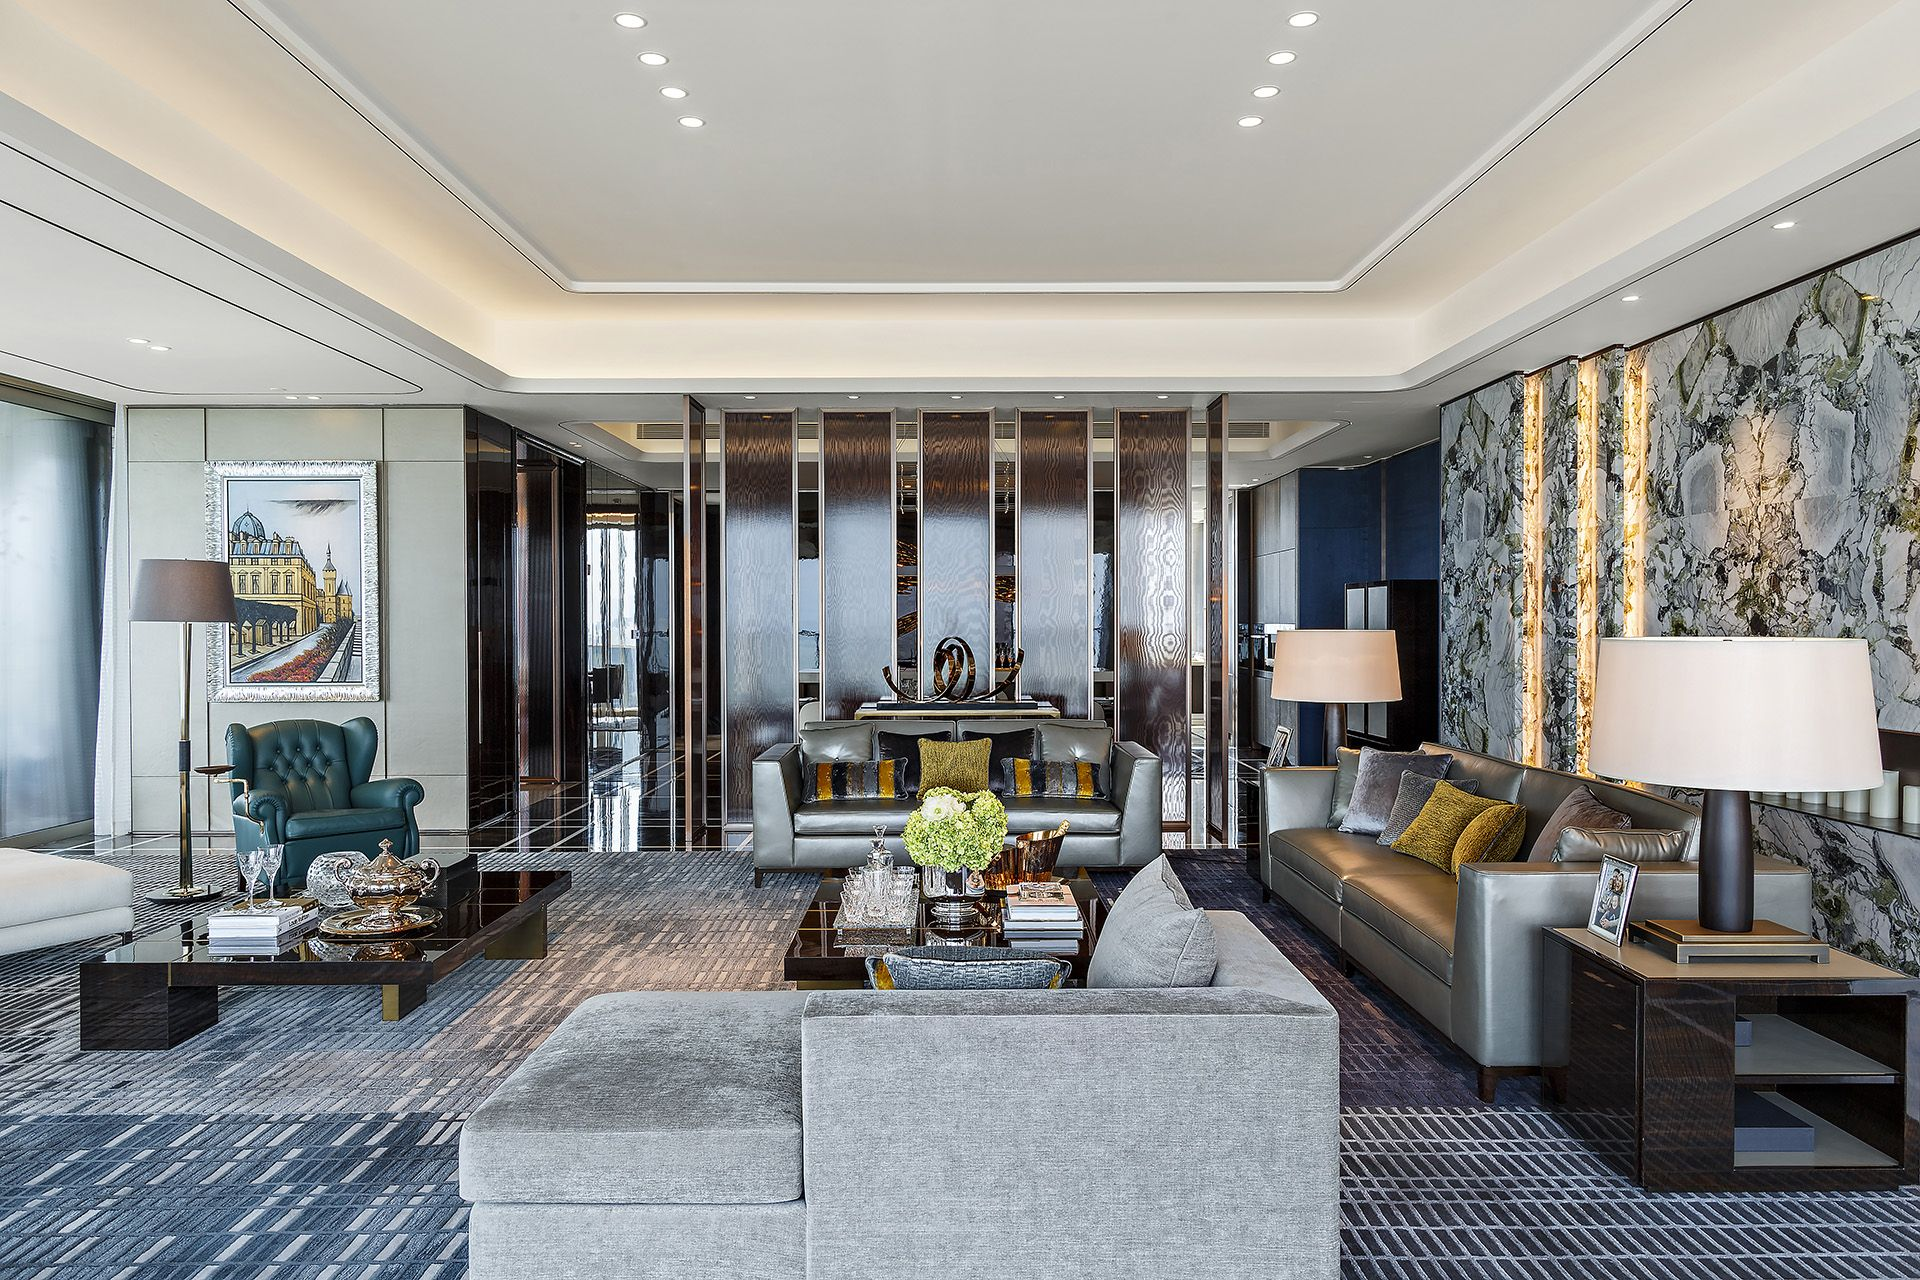 Good Luxury London Homes For Short Let At Stay And Escape